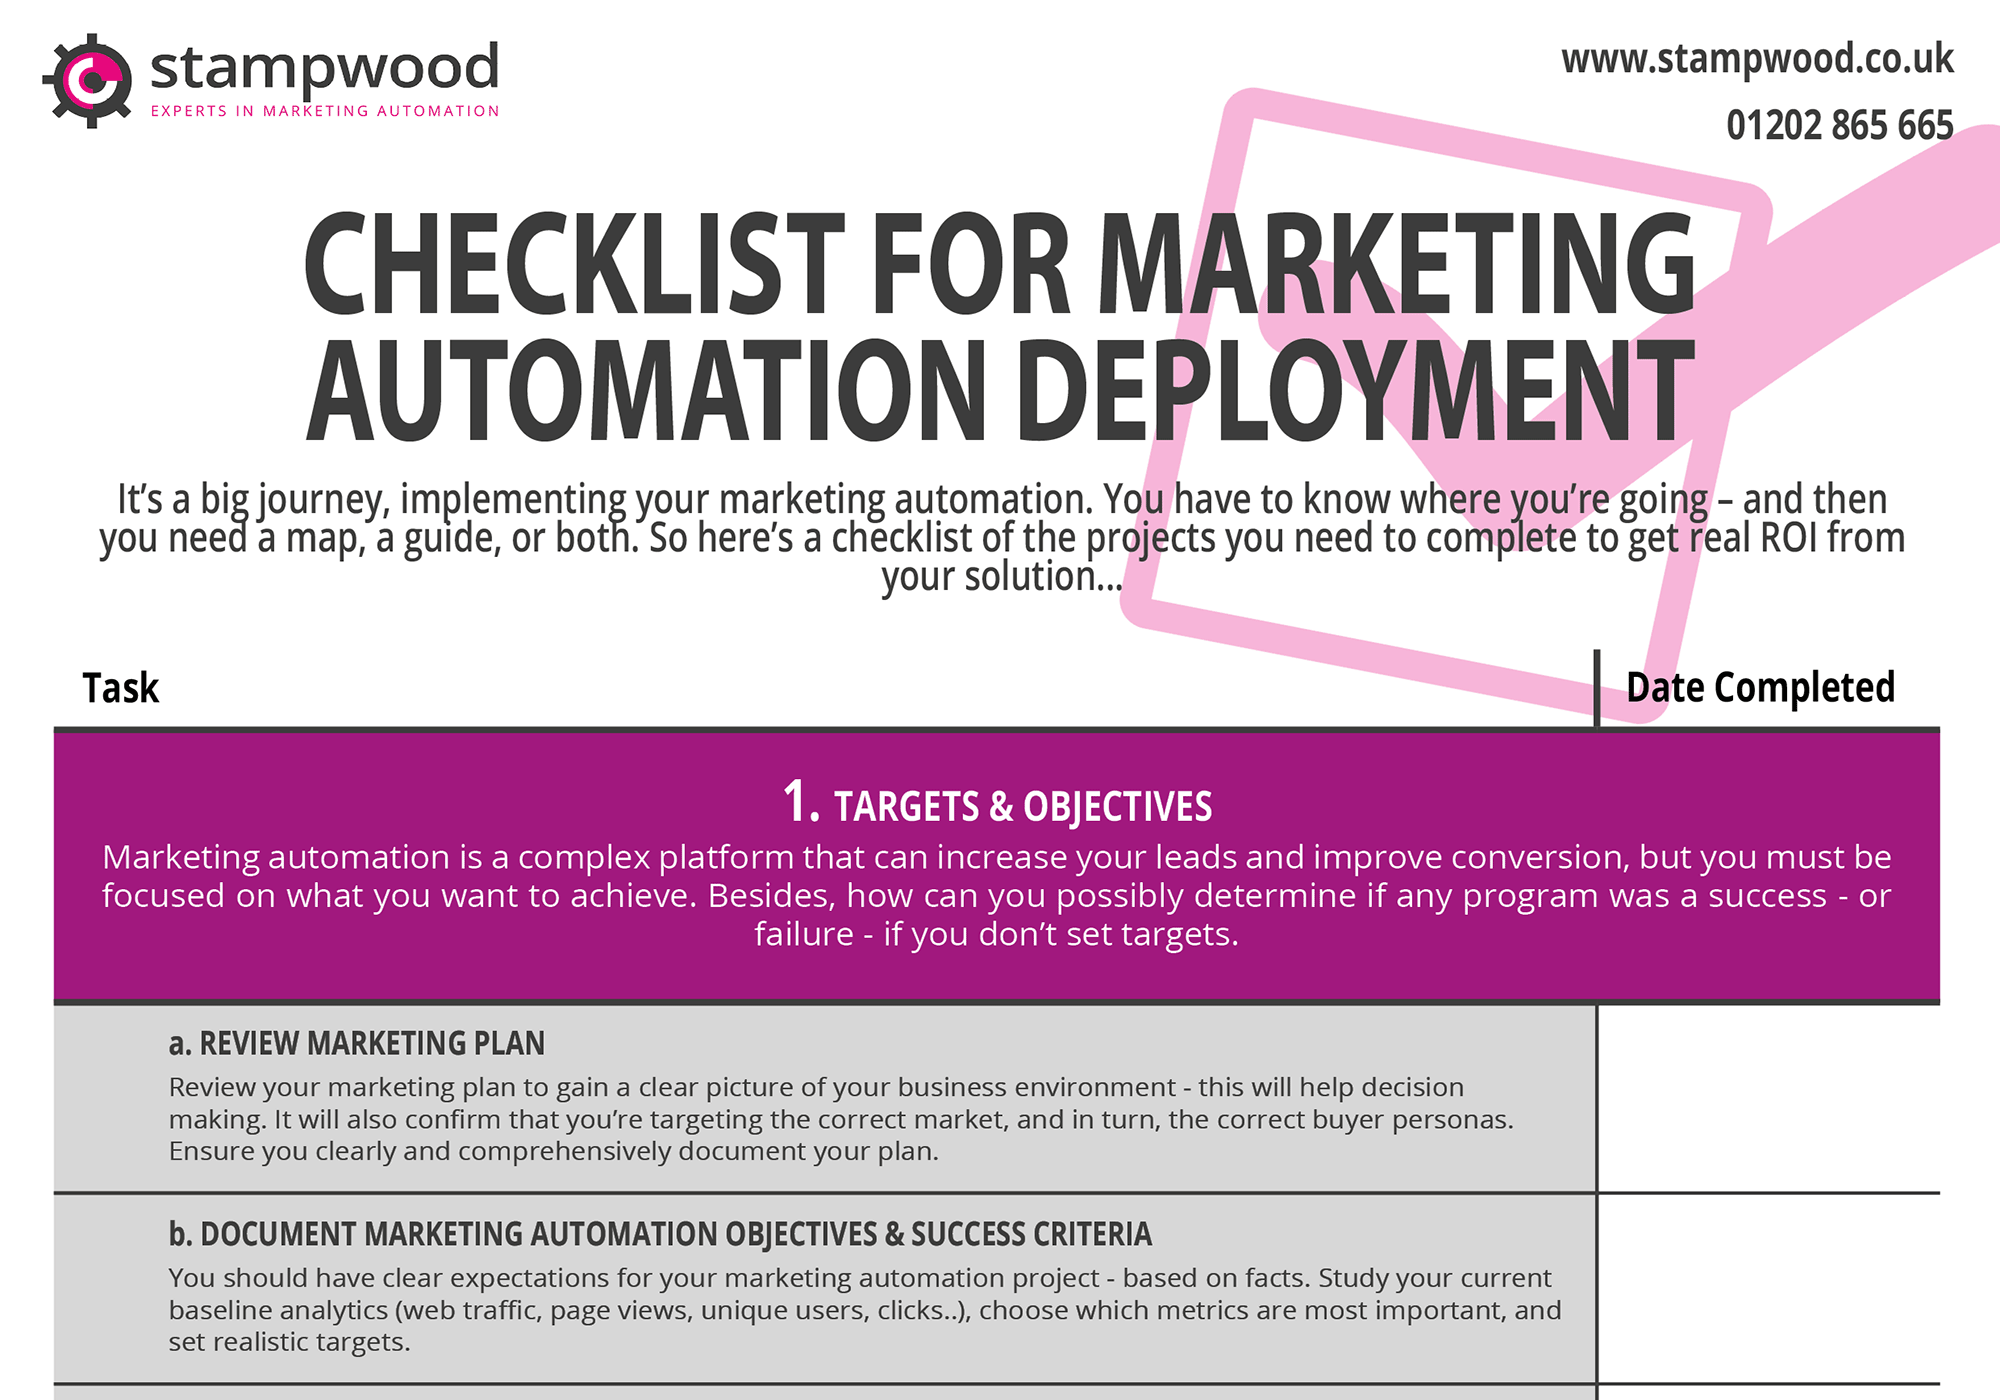 checklist-for-marketing-automation-deployment-front-page